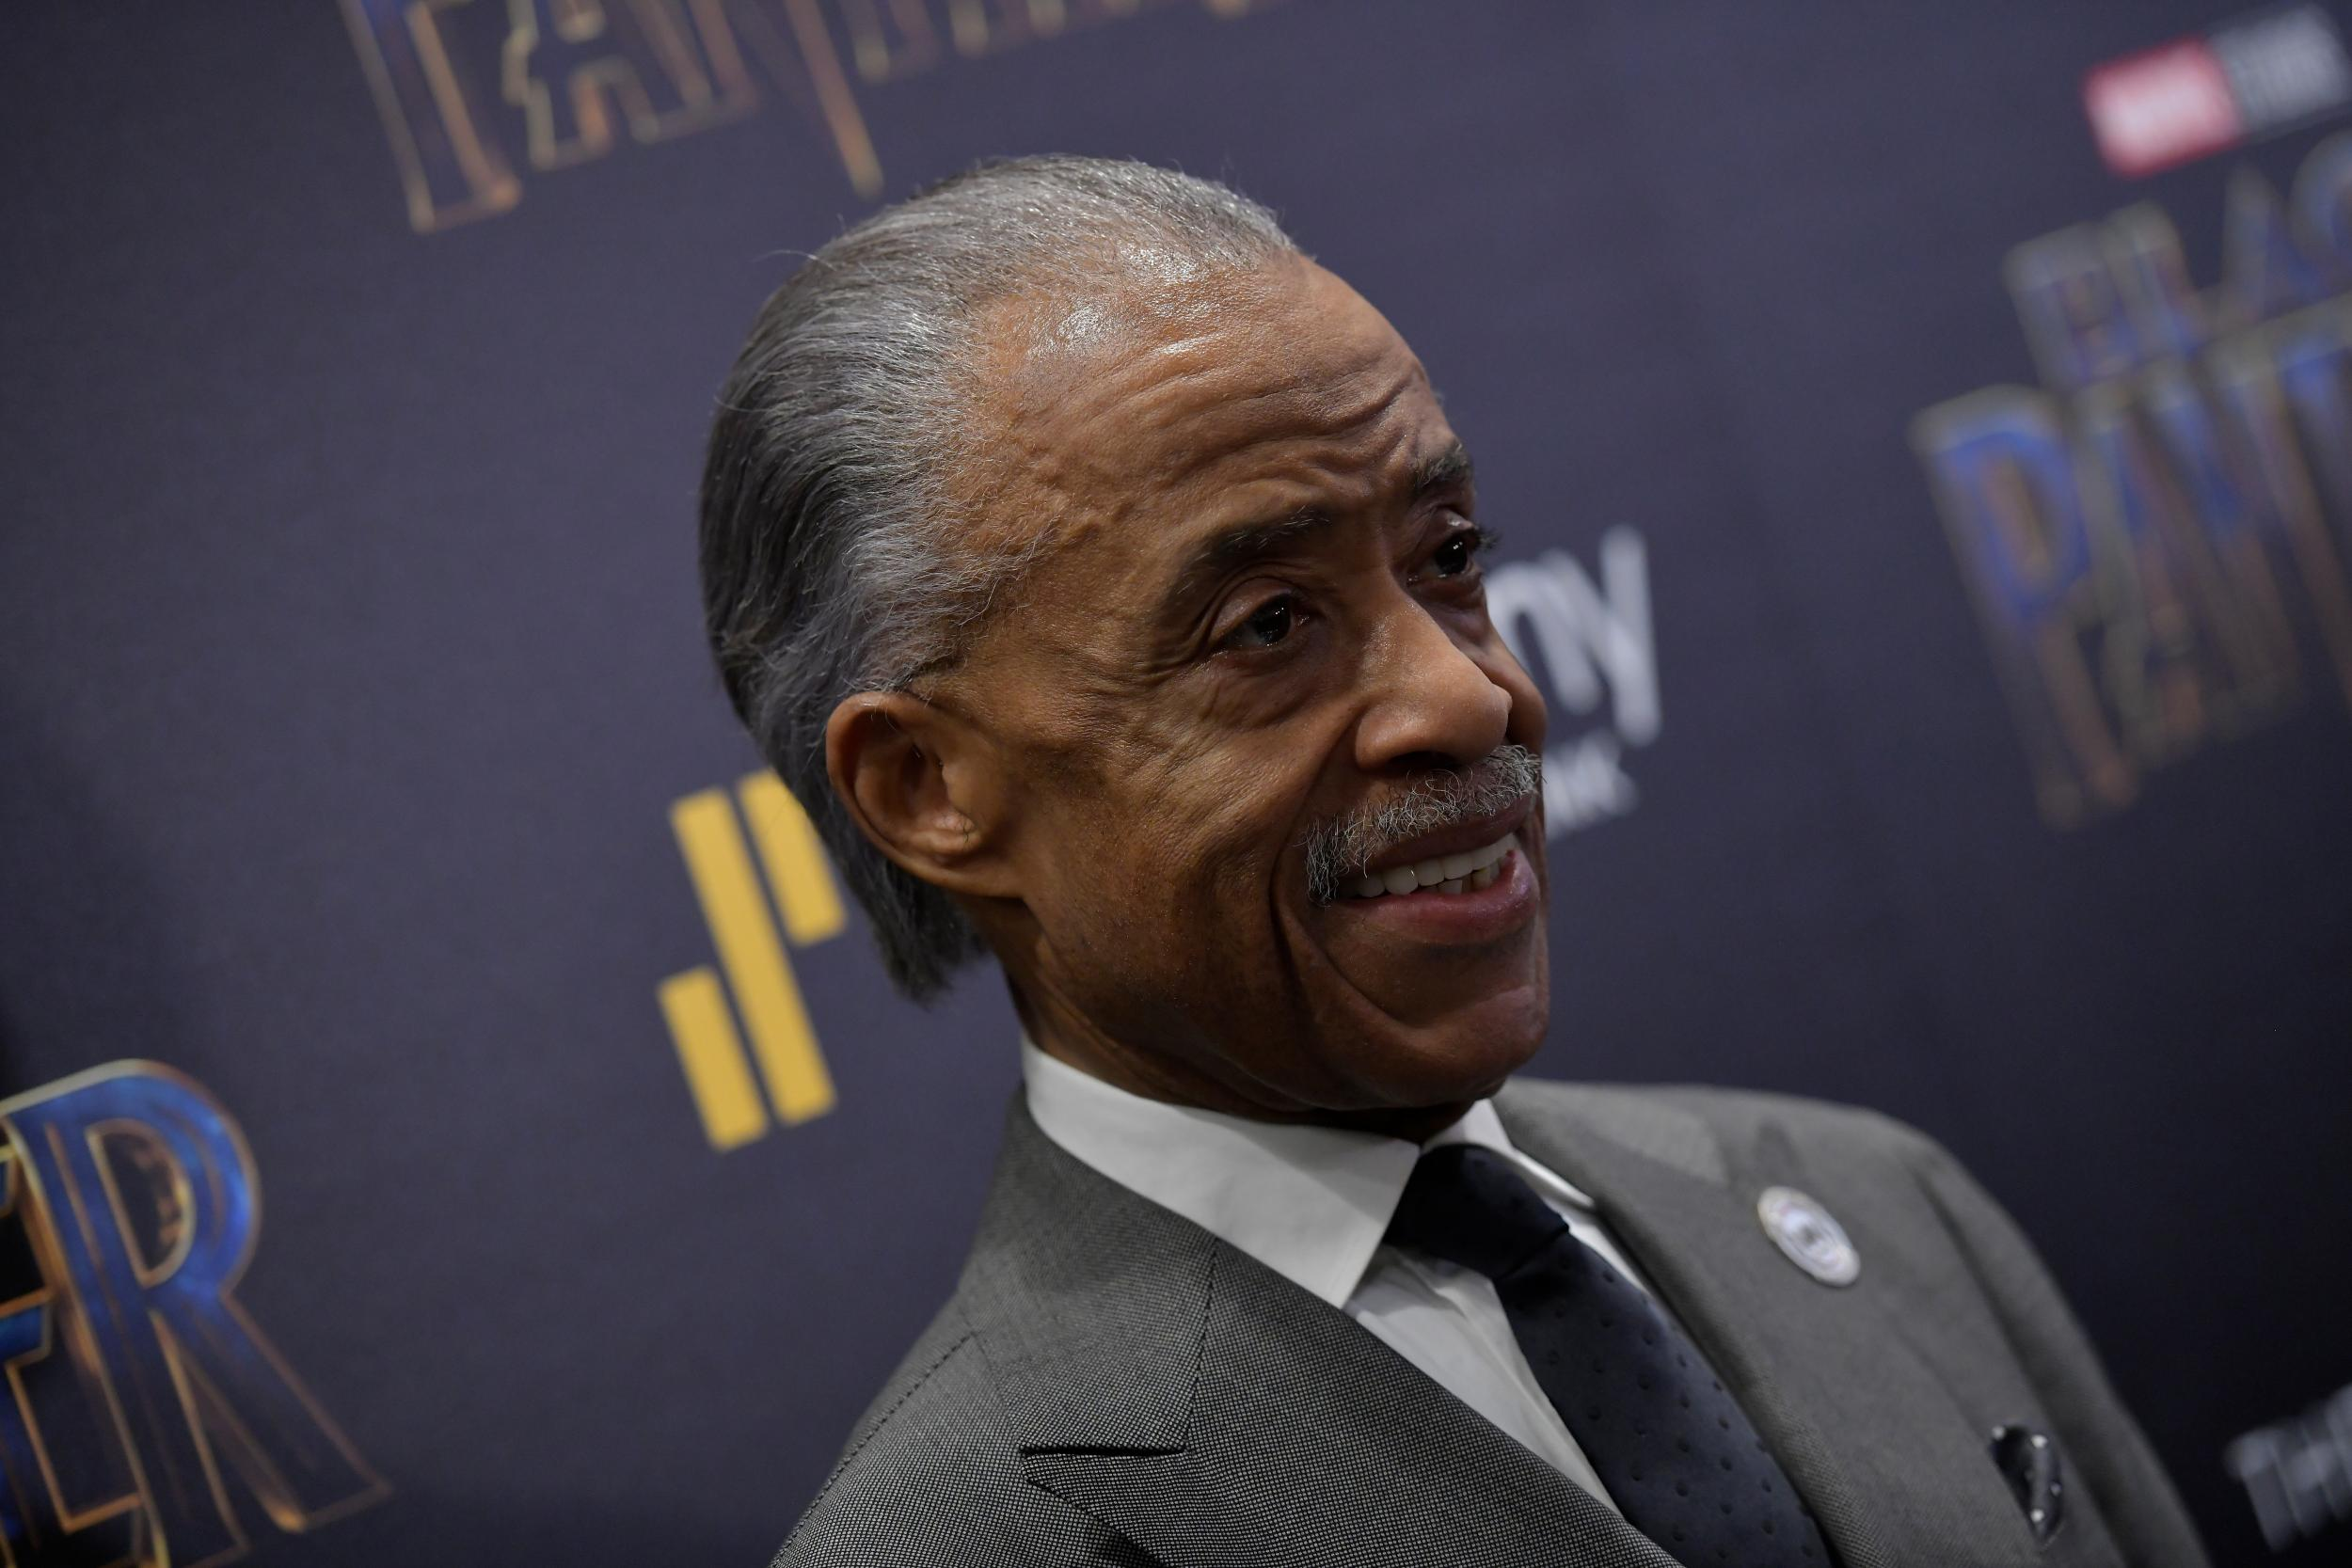 Reverend Al Sharpton says Trump is an 'embarrassment' to America and emboldens the far right